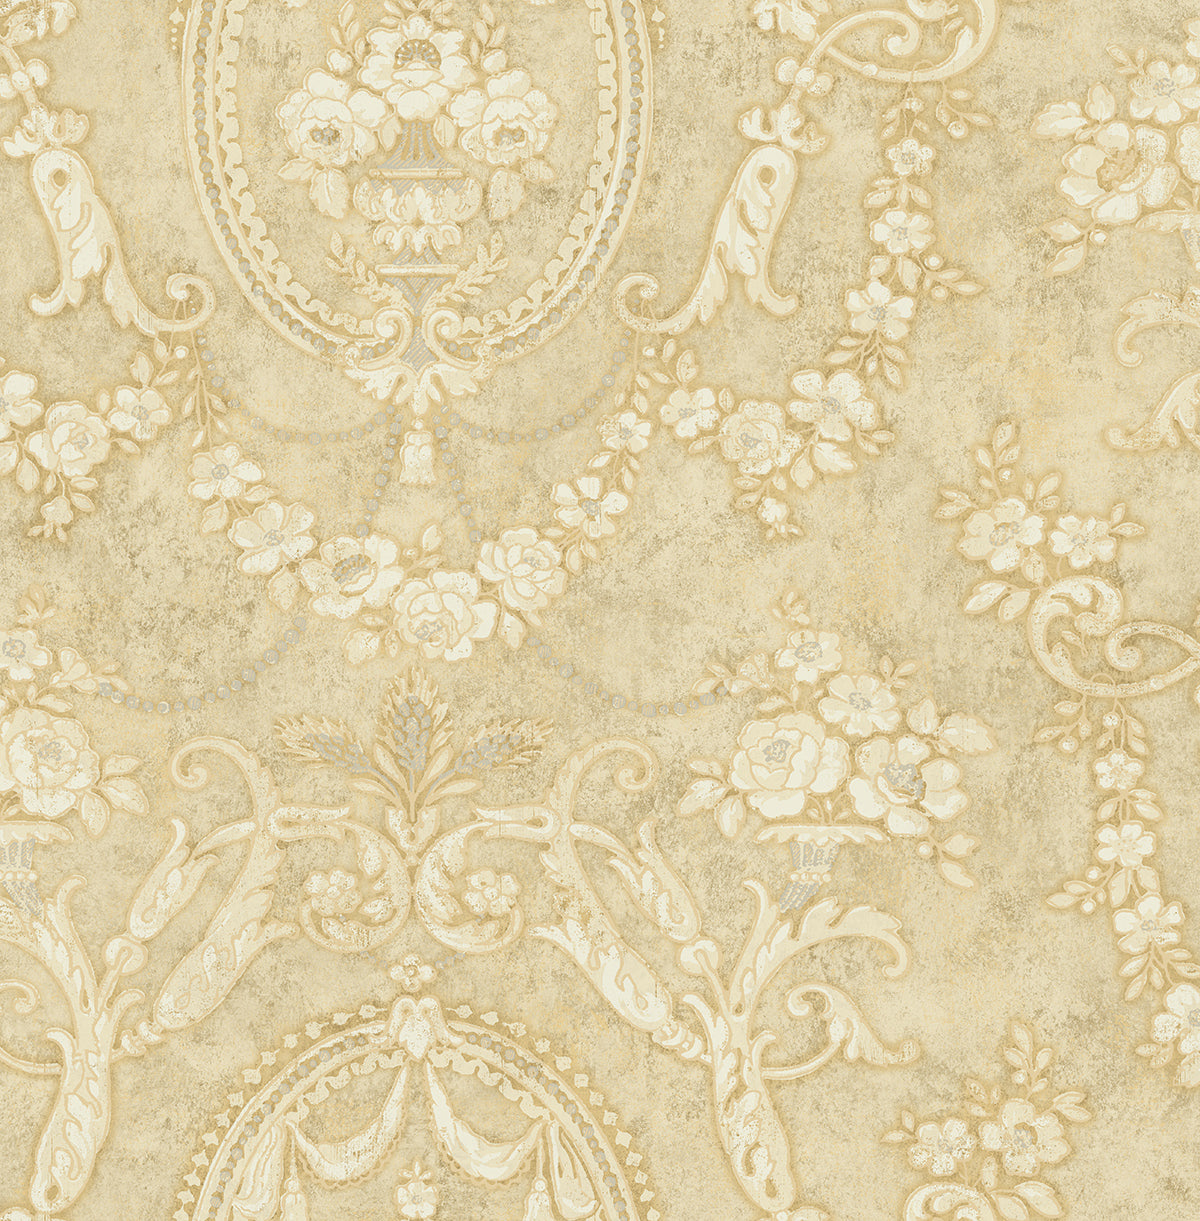 Frills Cameo Wallpaper in Antique Luster from the Vintage Home 2 ...